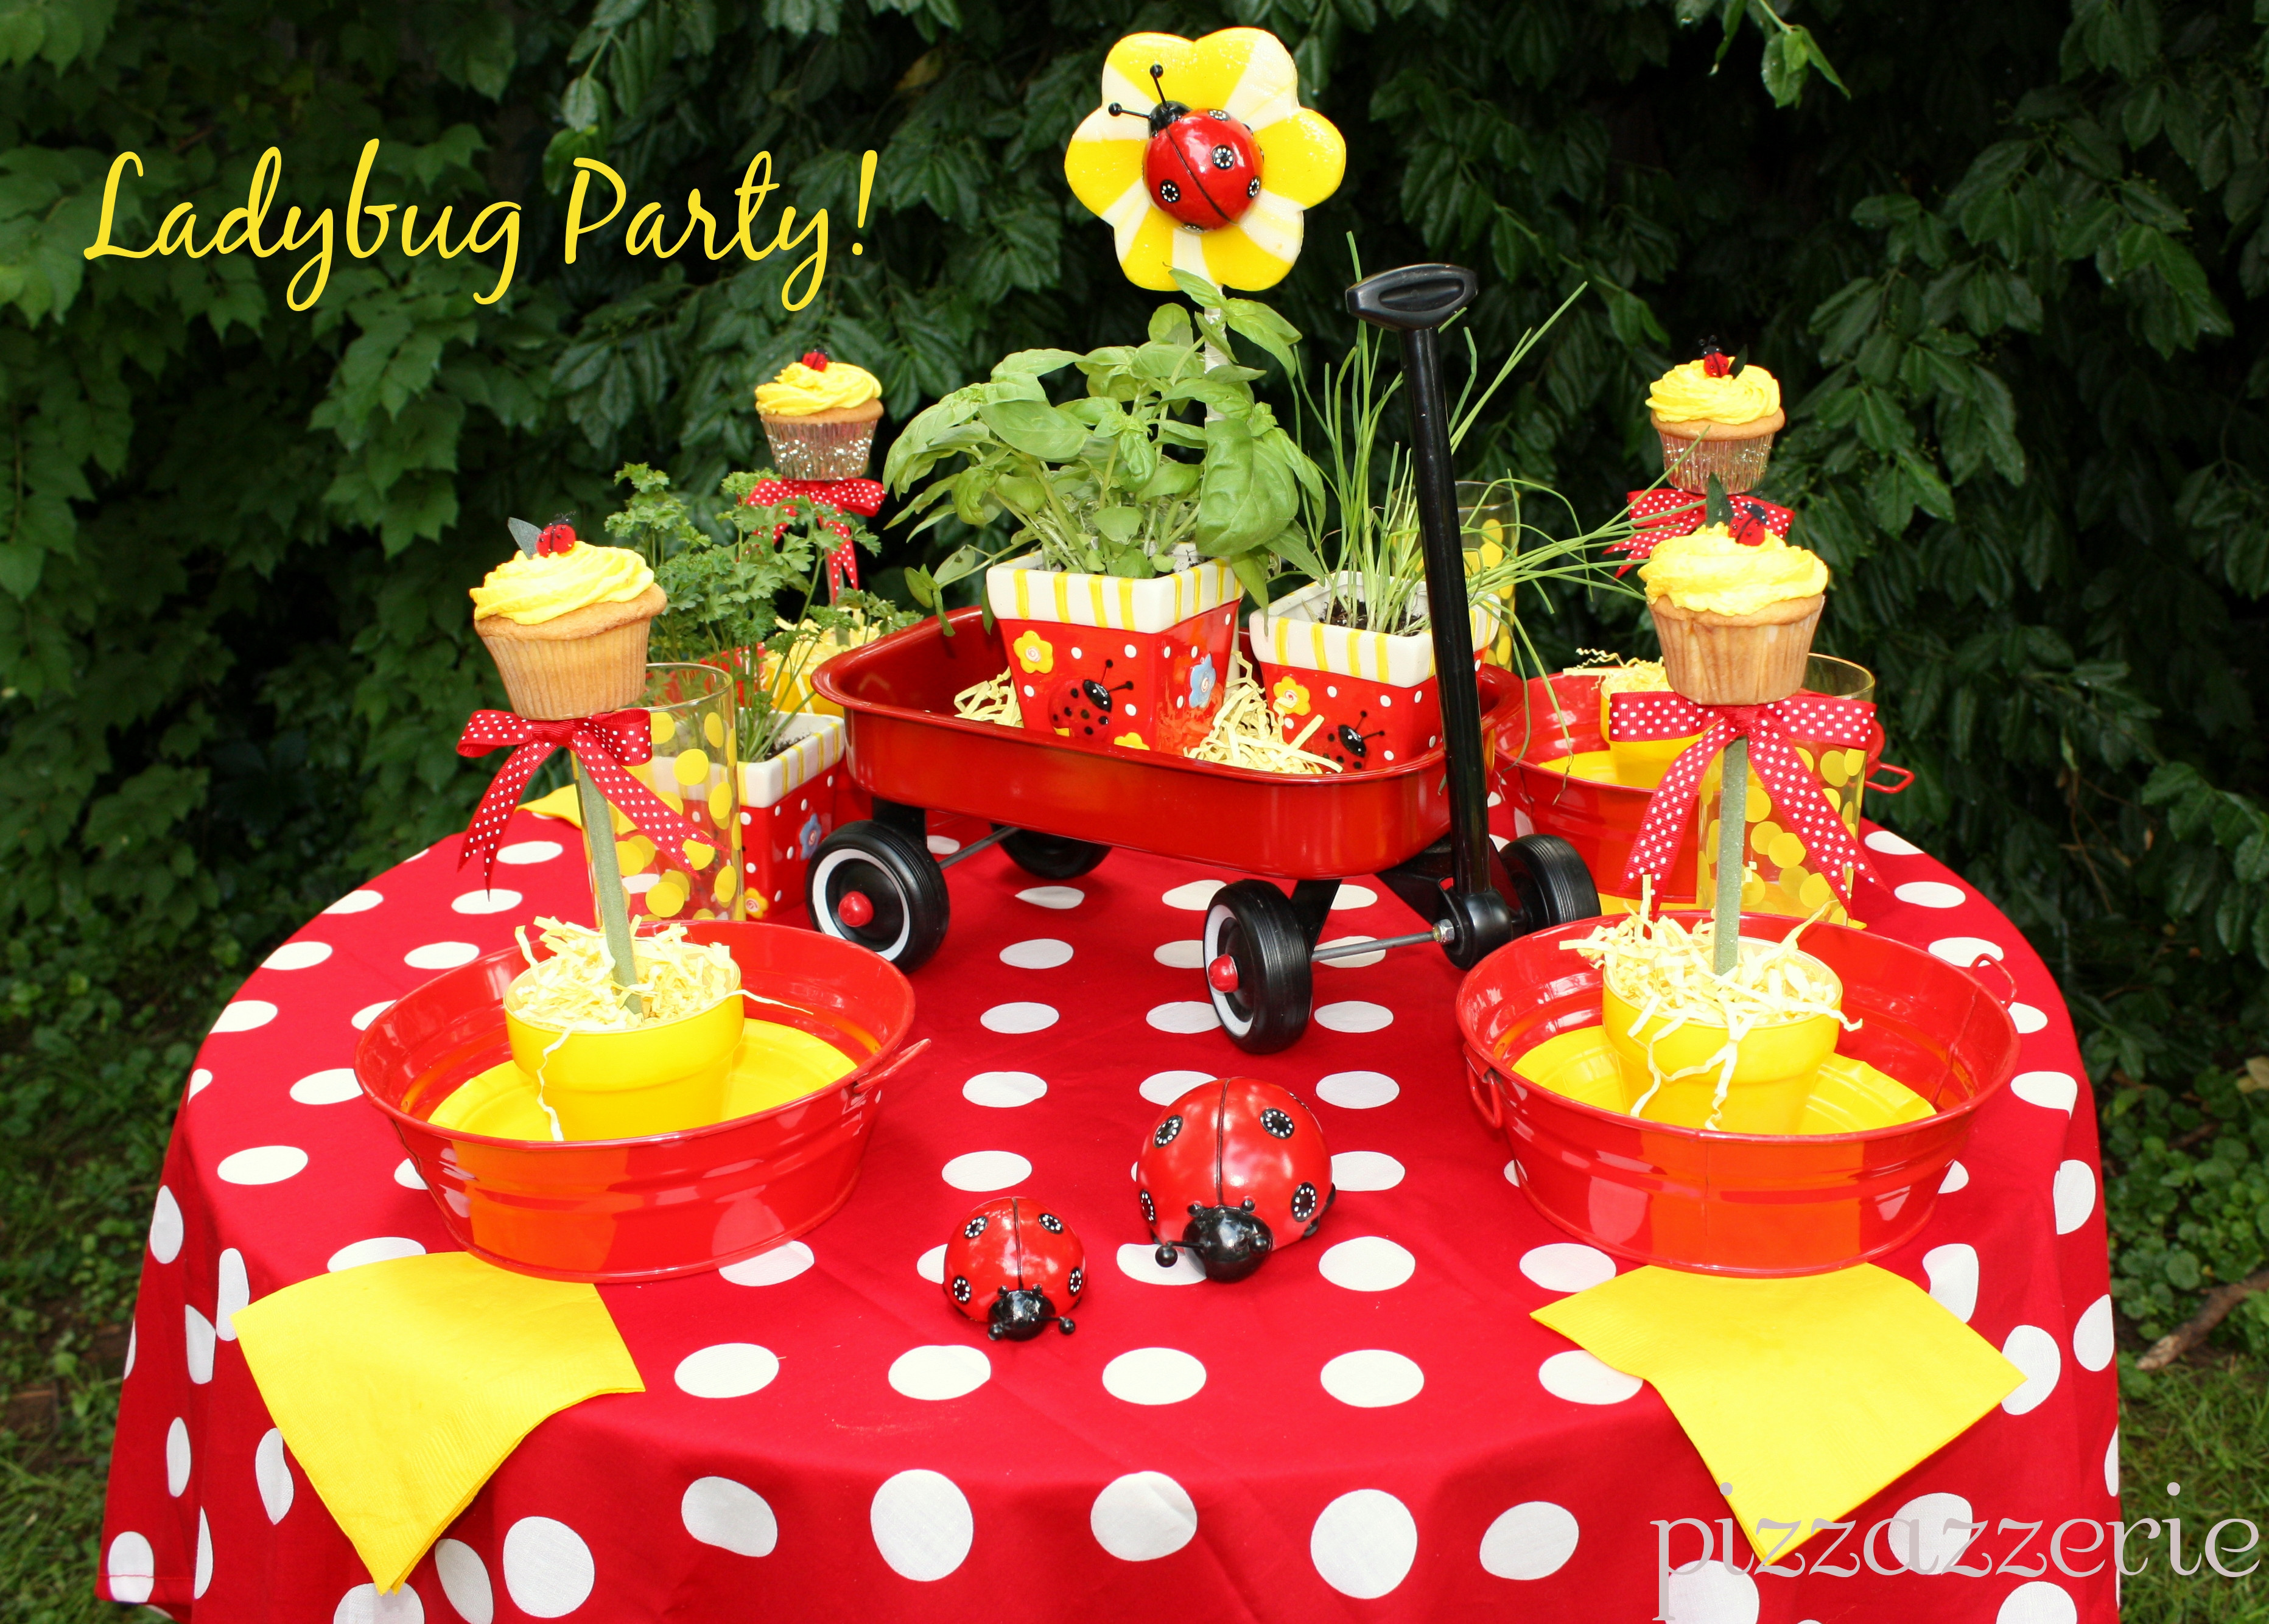 Best ideas about Ladybug Birthday Party . Save or Pin Ladybug Garden Party Now.